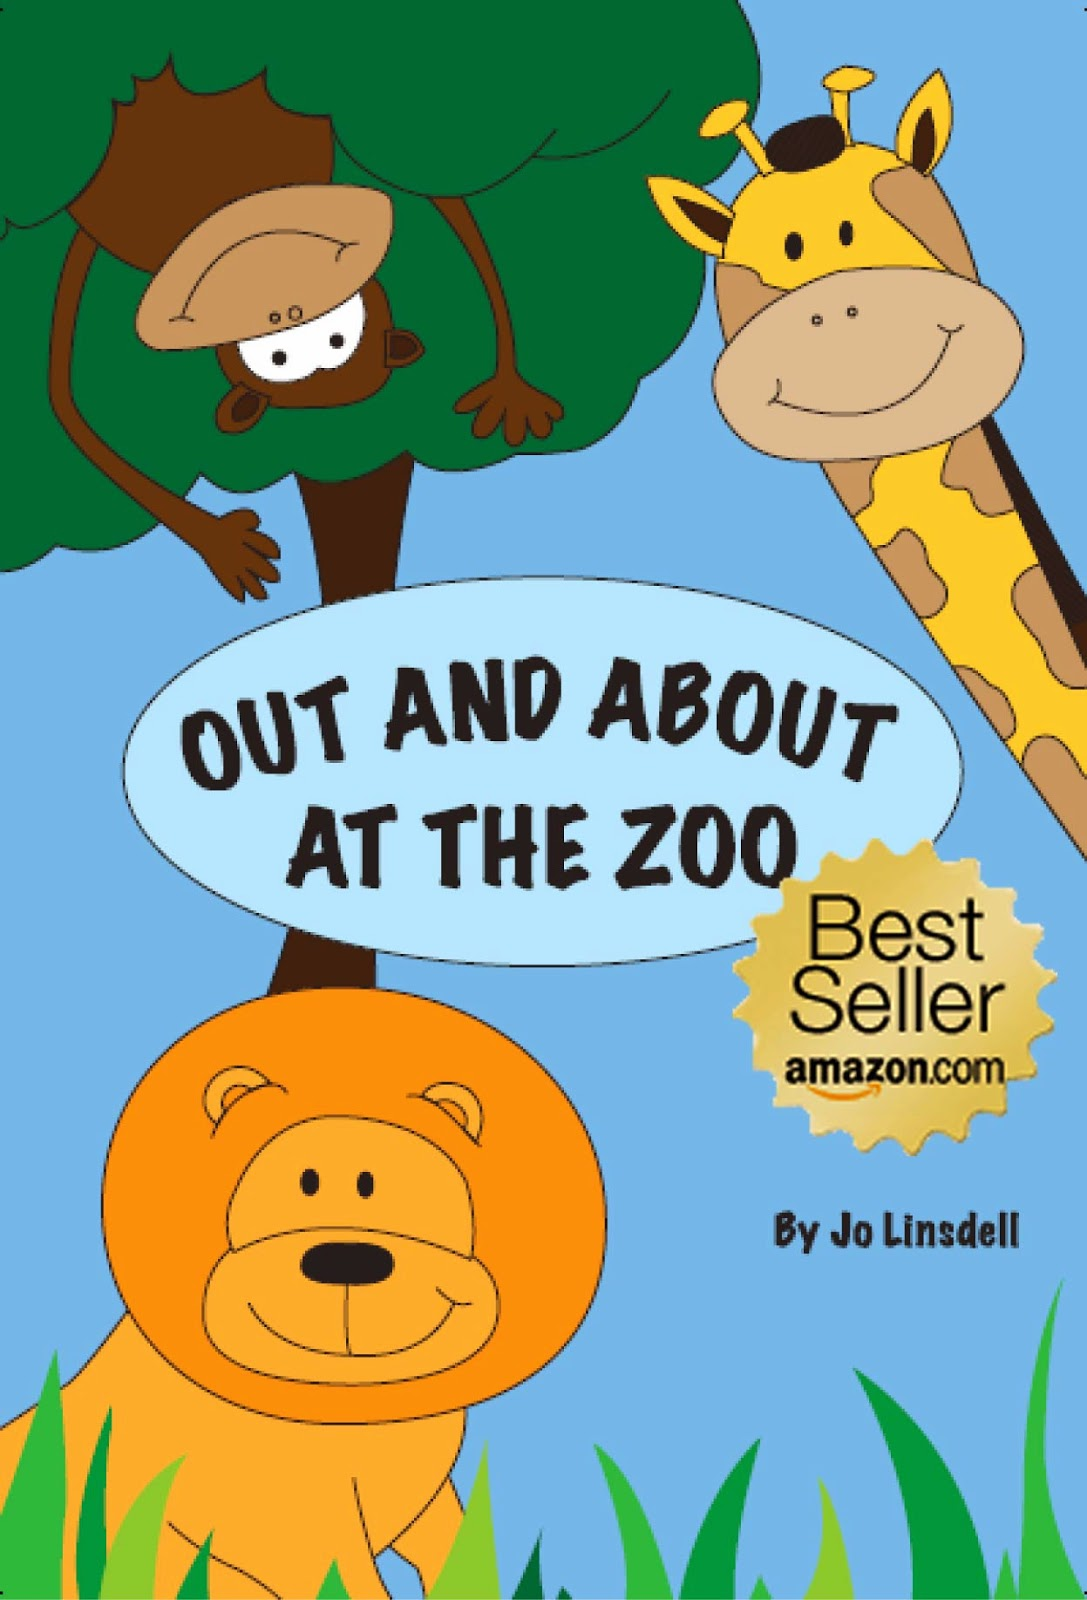 Out and about the Zoo by Jo Linsdell